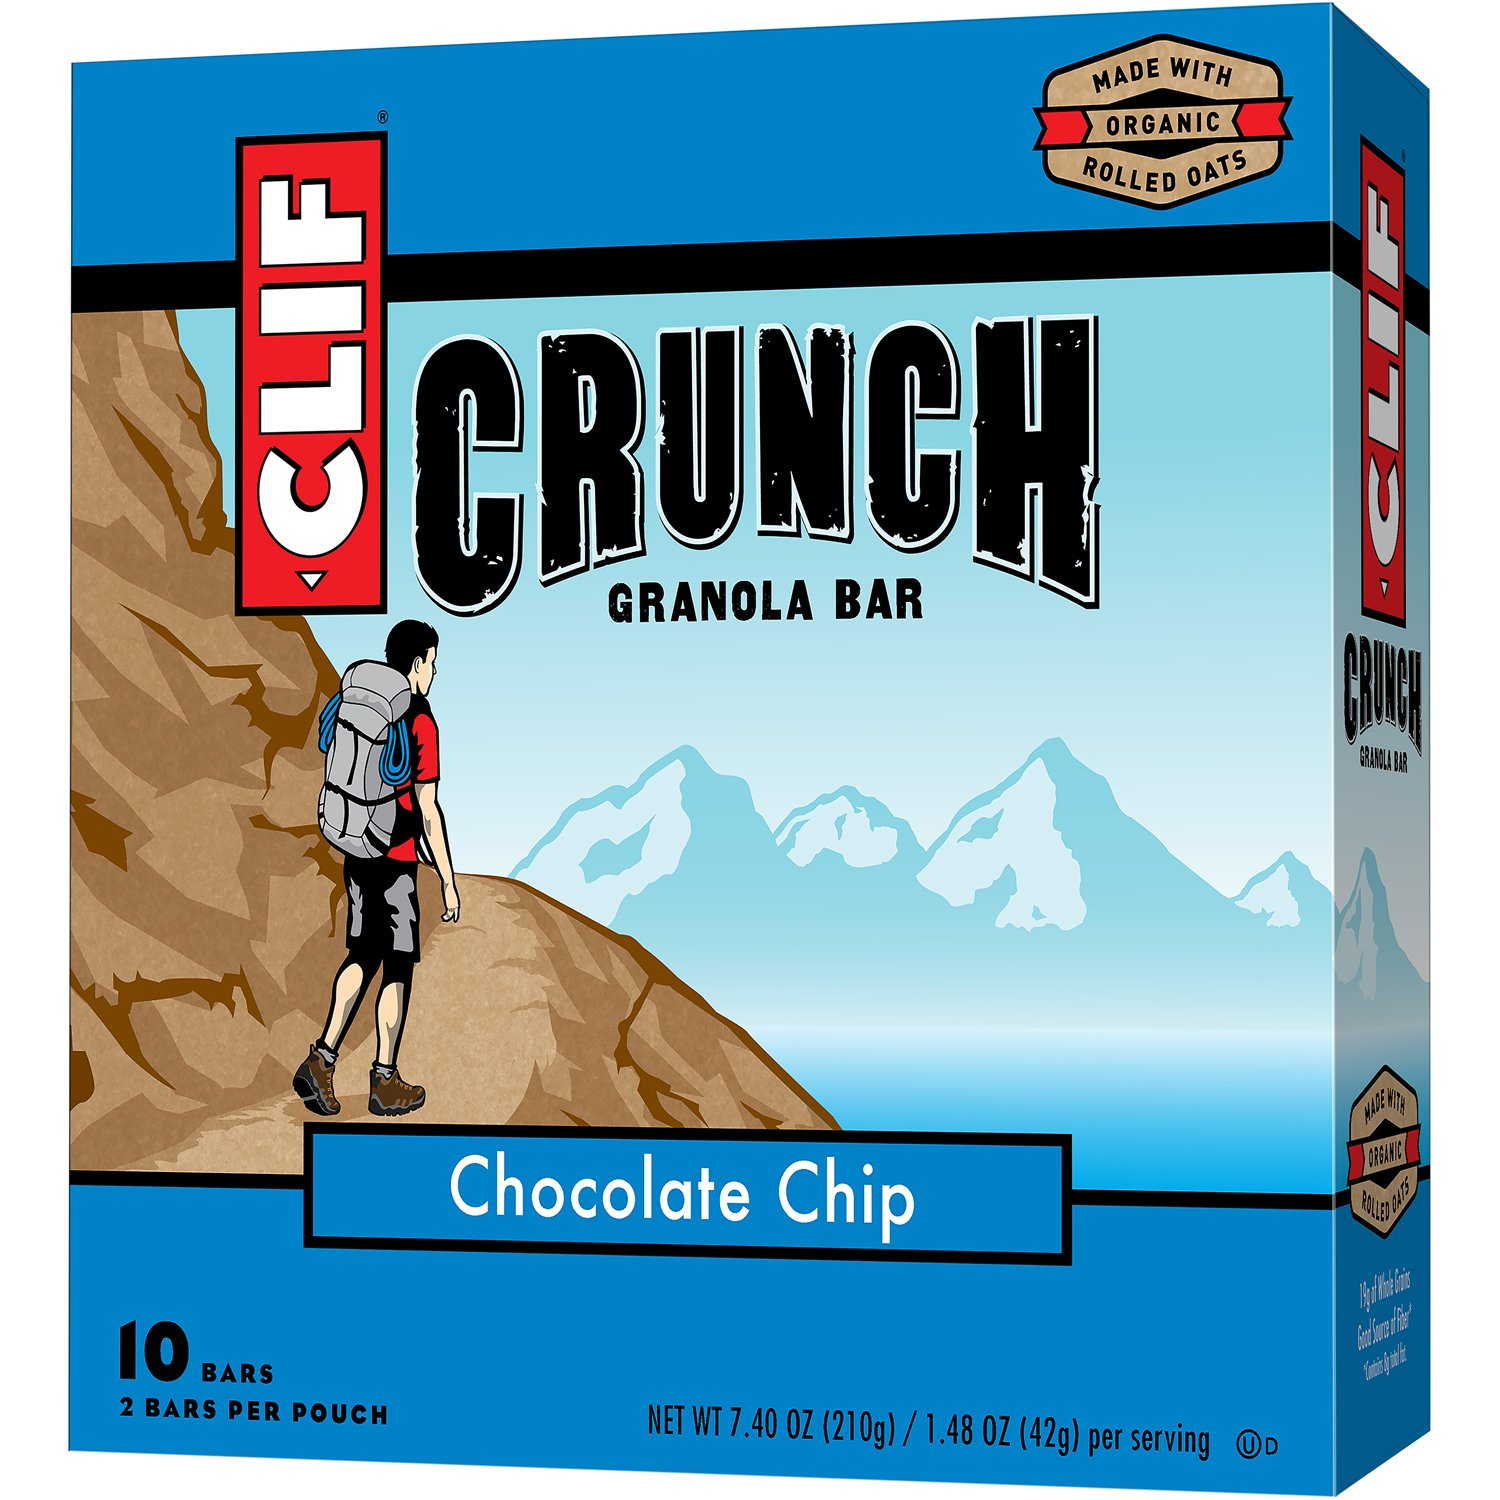 CLIF CRUNCH - Granola Bar - Chocolate Chip - (1.48 Ounce, 5 Two-Bar Snack Pouches)